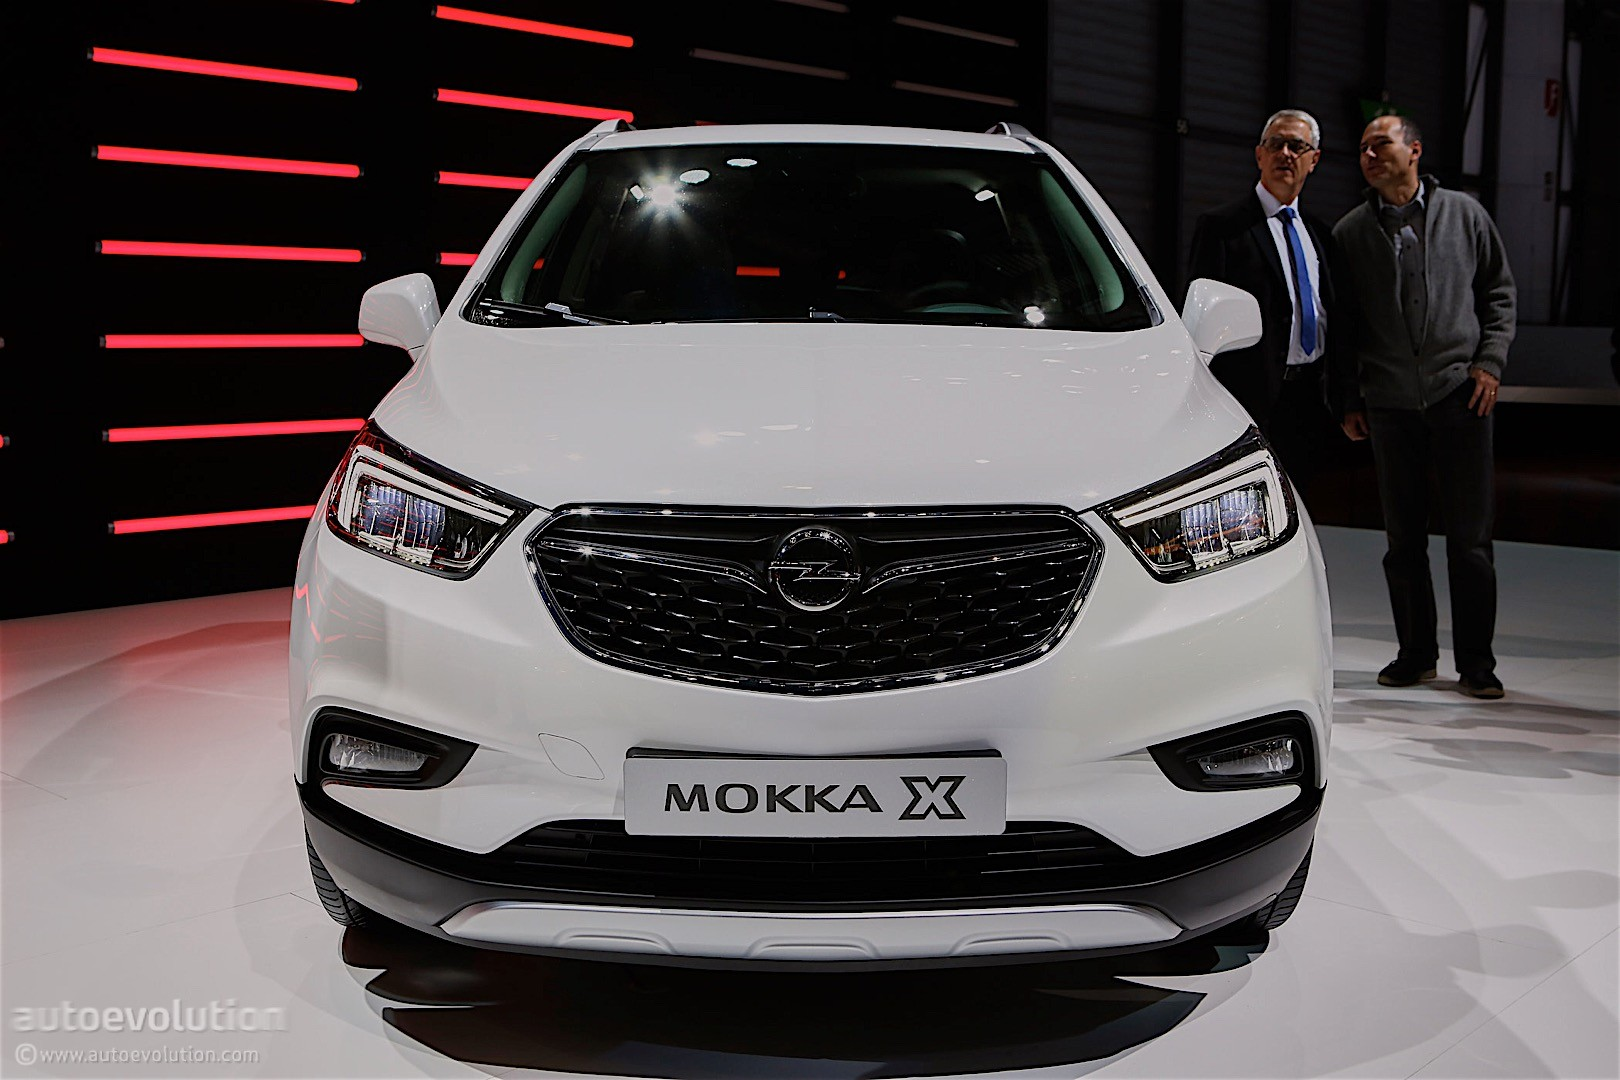 opel mokka x successor coming in 2019 large suv in 2020. Black Bedroom Furniture Sets. Home Design Ideas